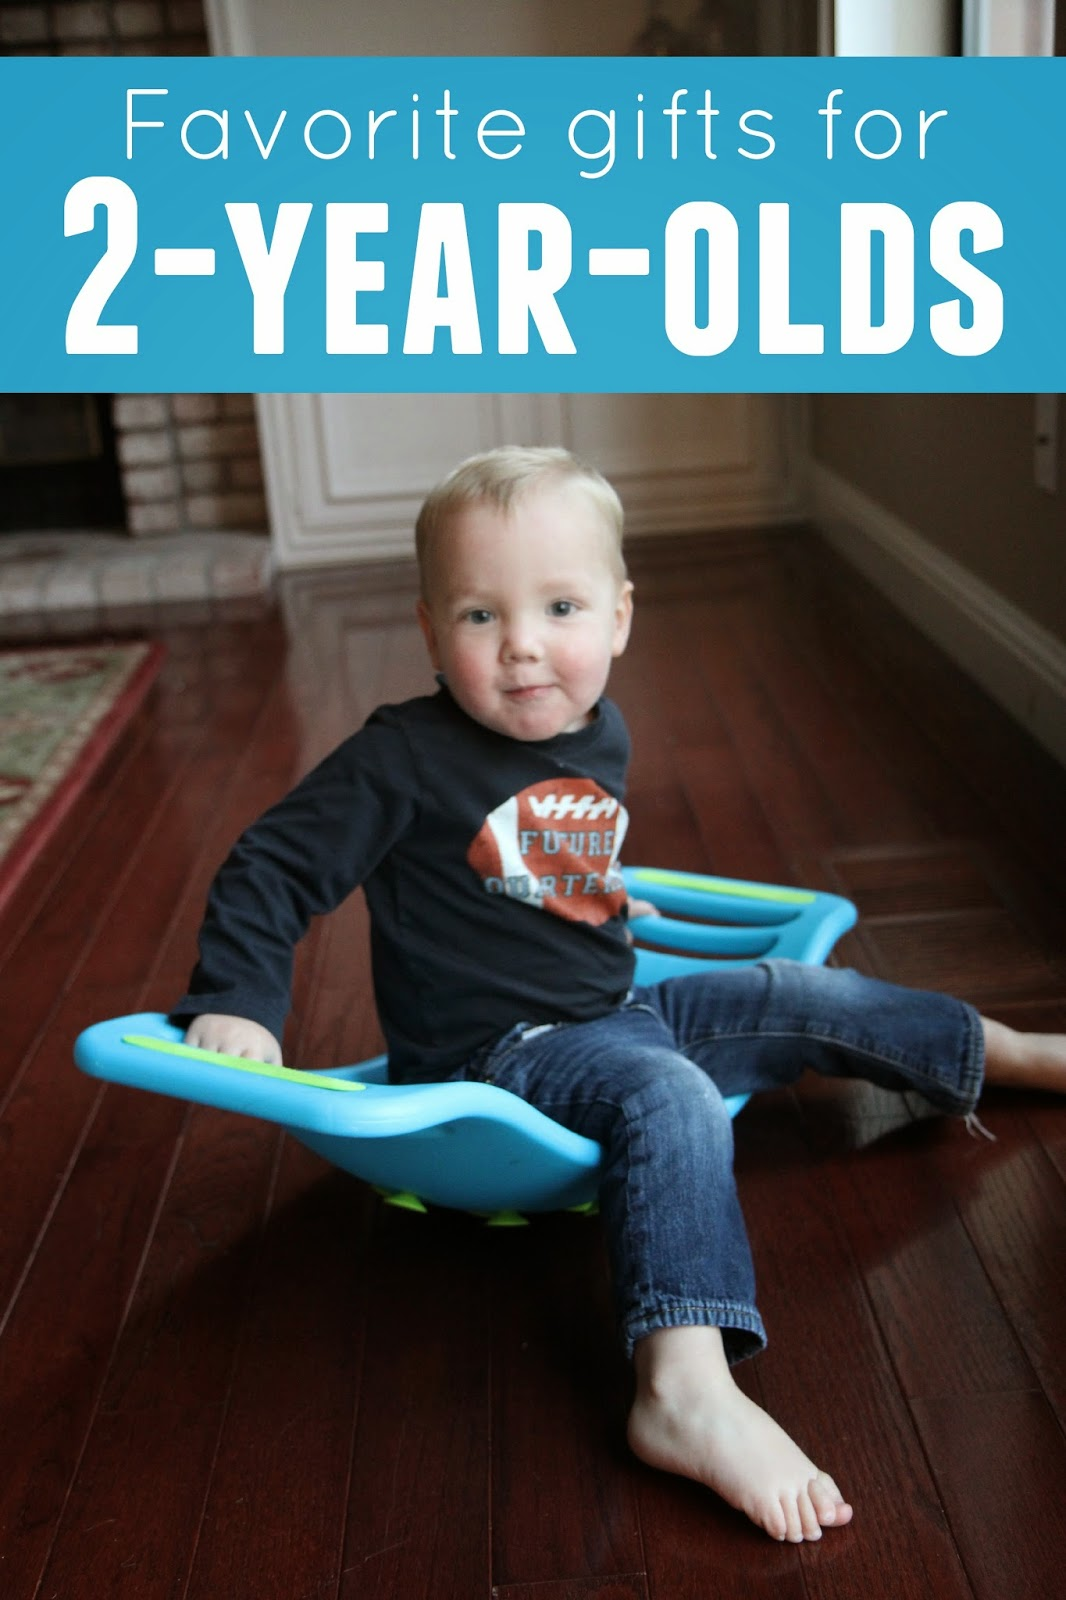 Toddler Approved Favorite Ts For 2 Year Olds